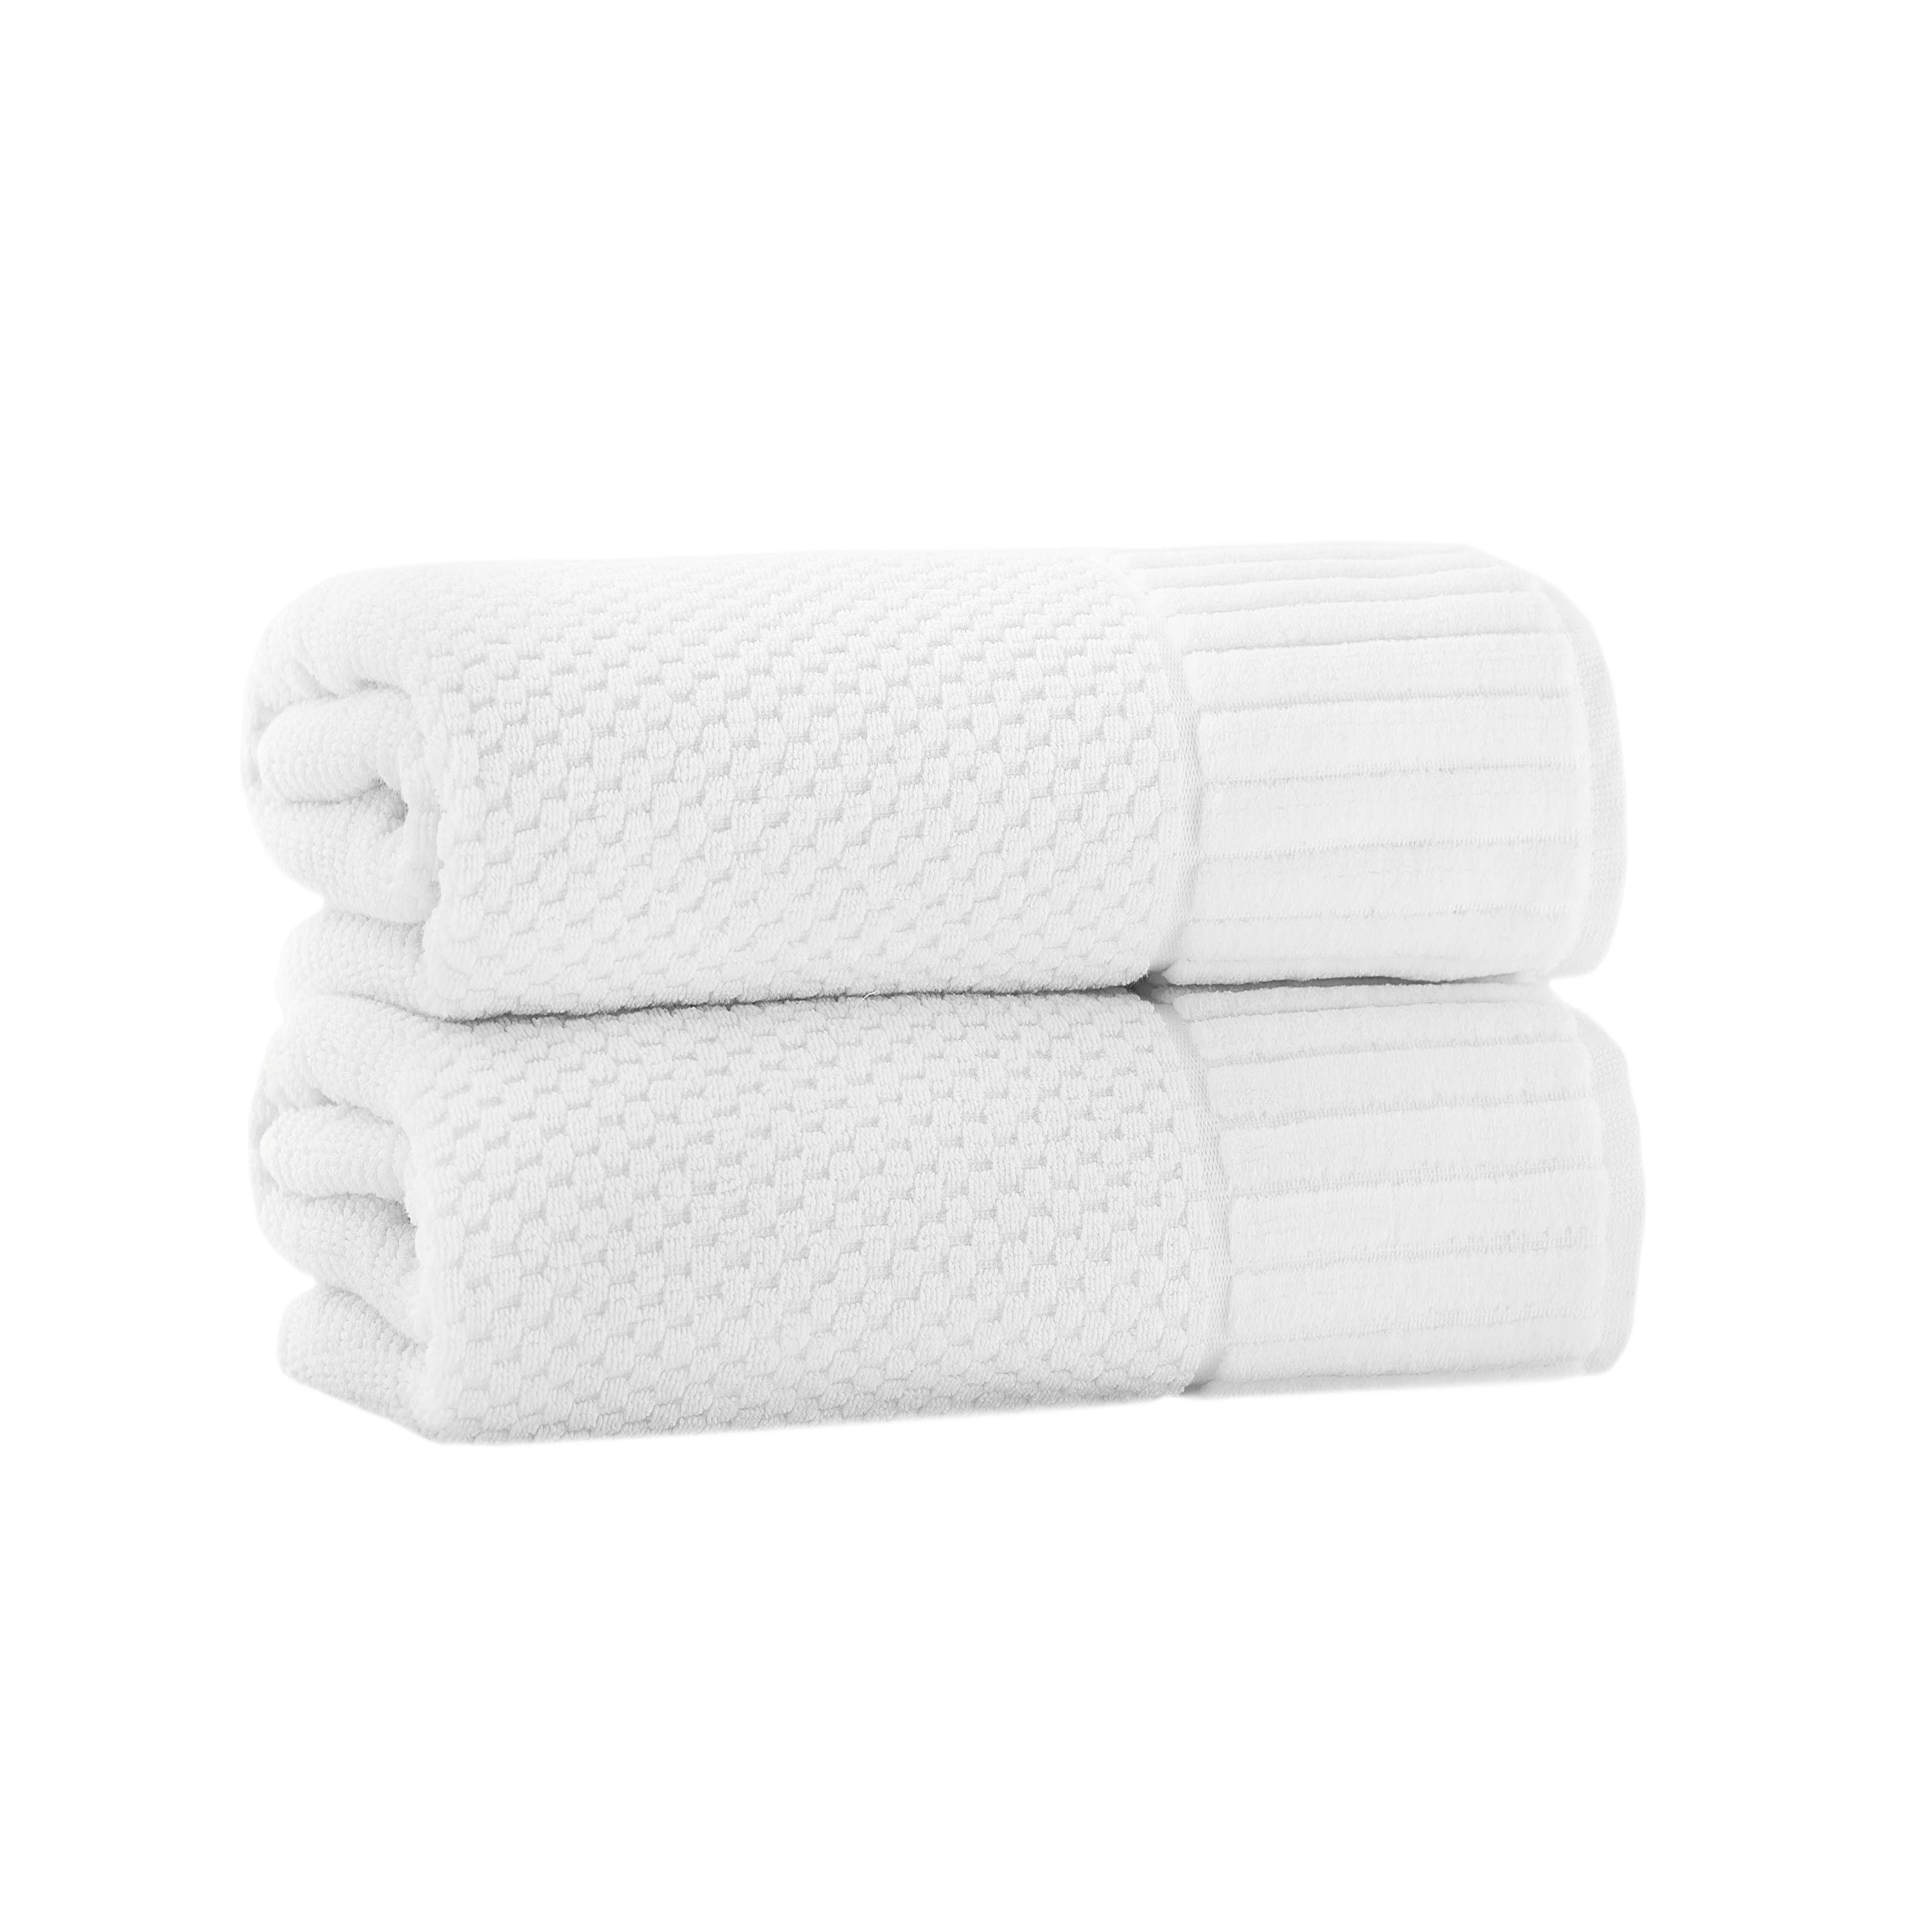 thumbnail 9 - The-Gray-Barn-Scharbauer-Bath-Towels-Set-of-2